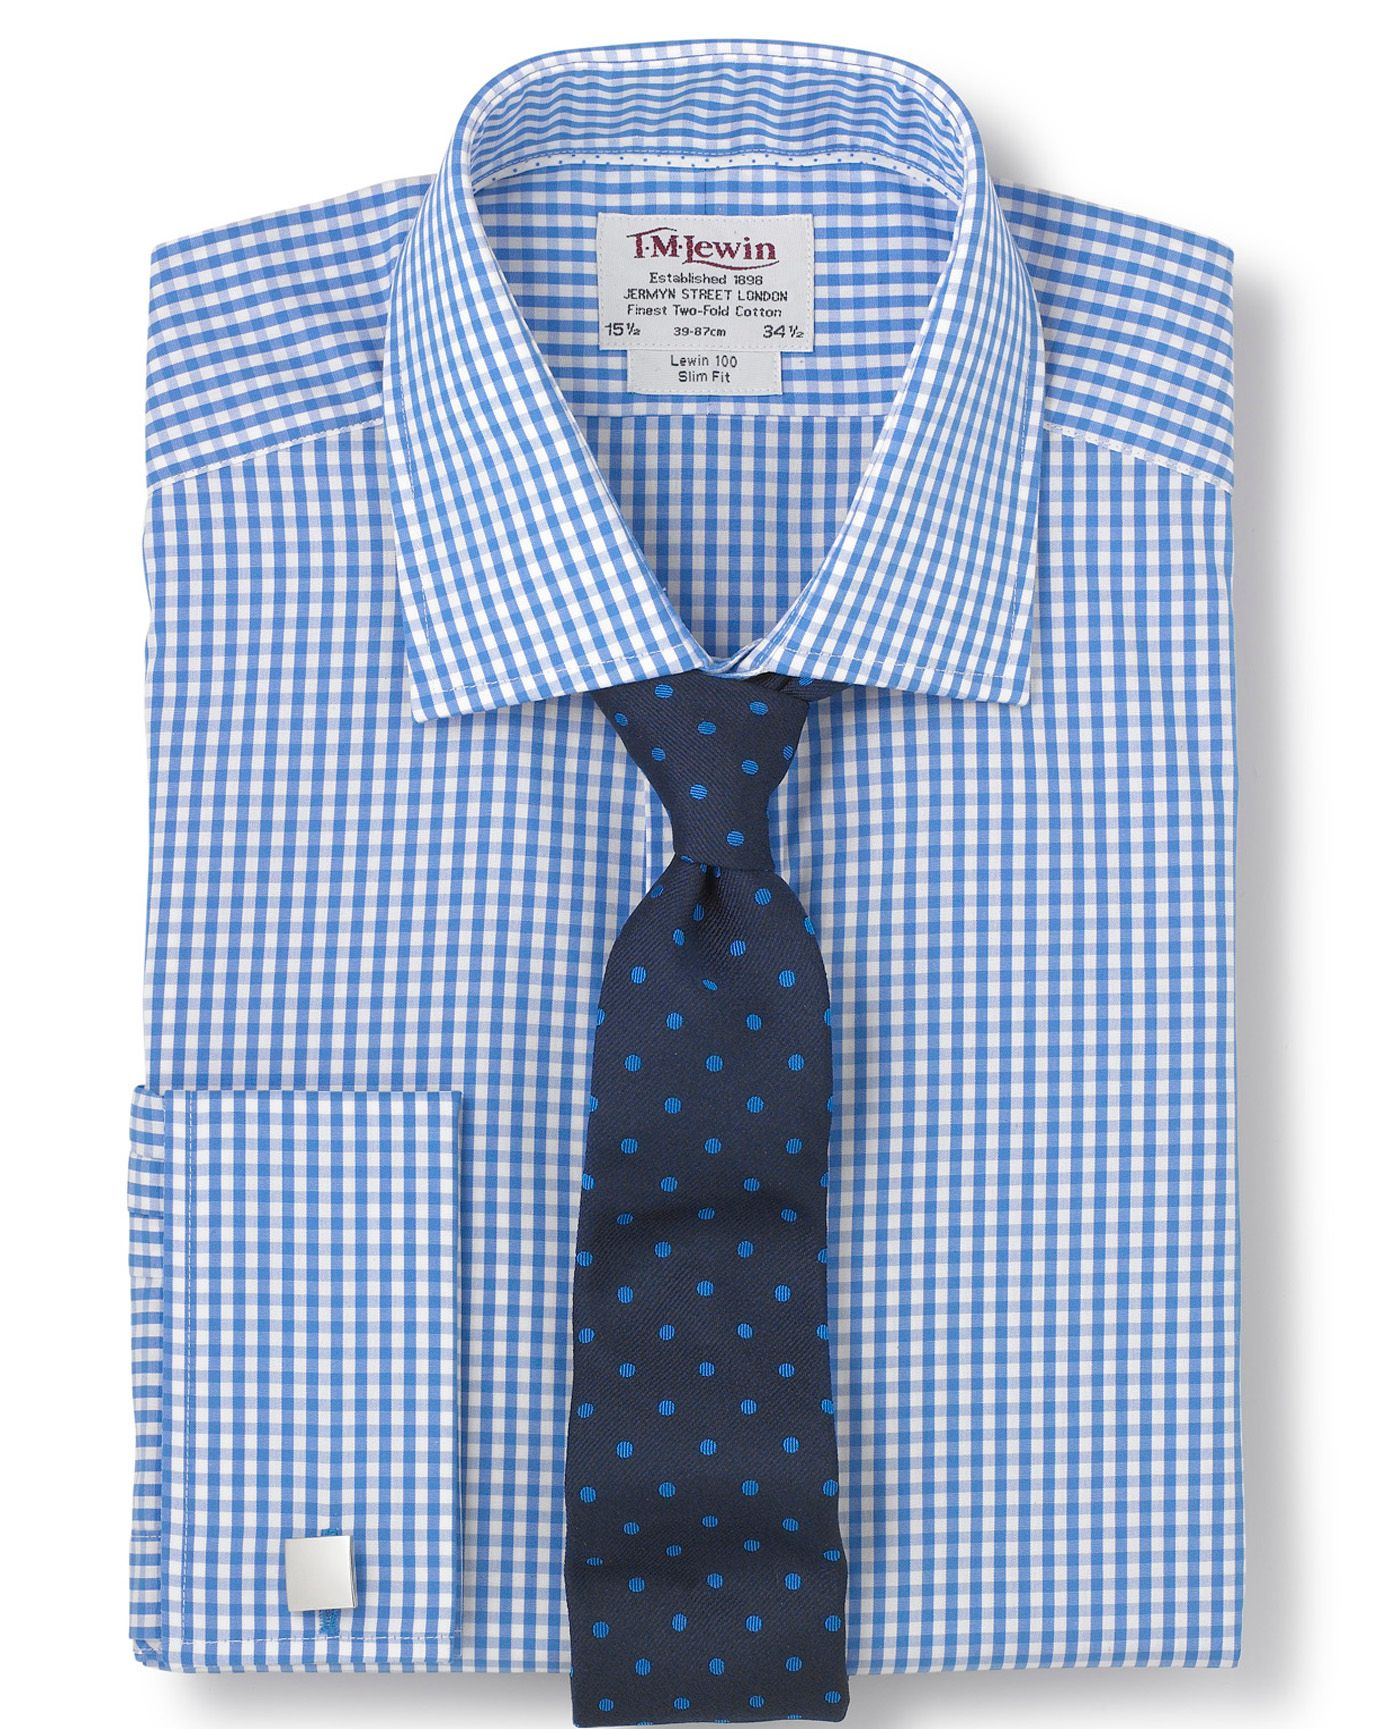 Blue gingham check shirts